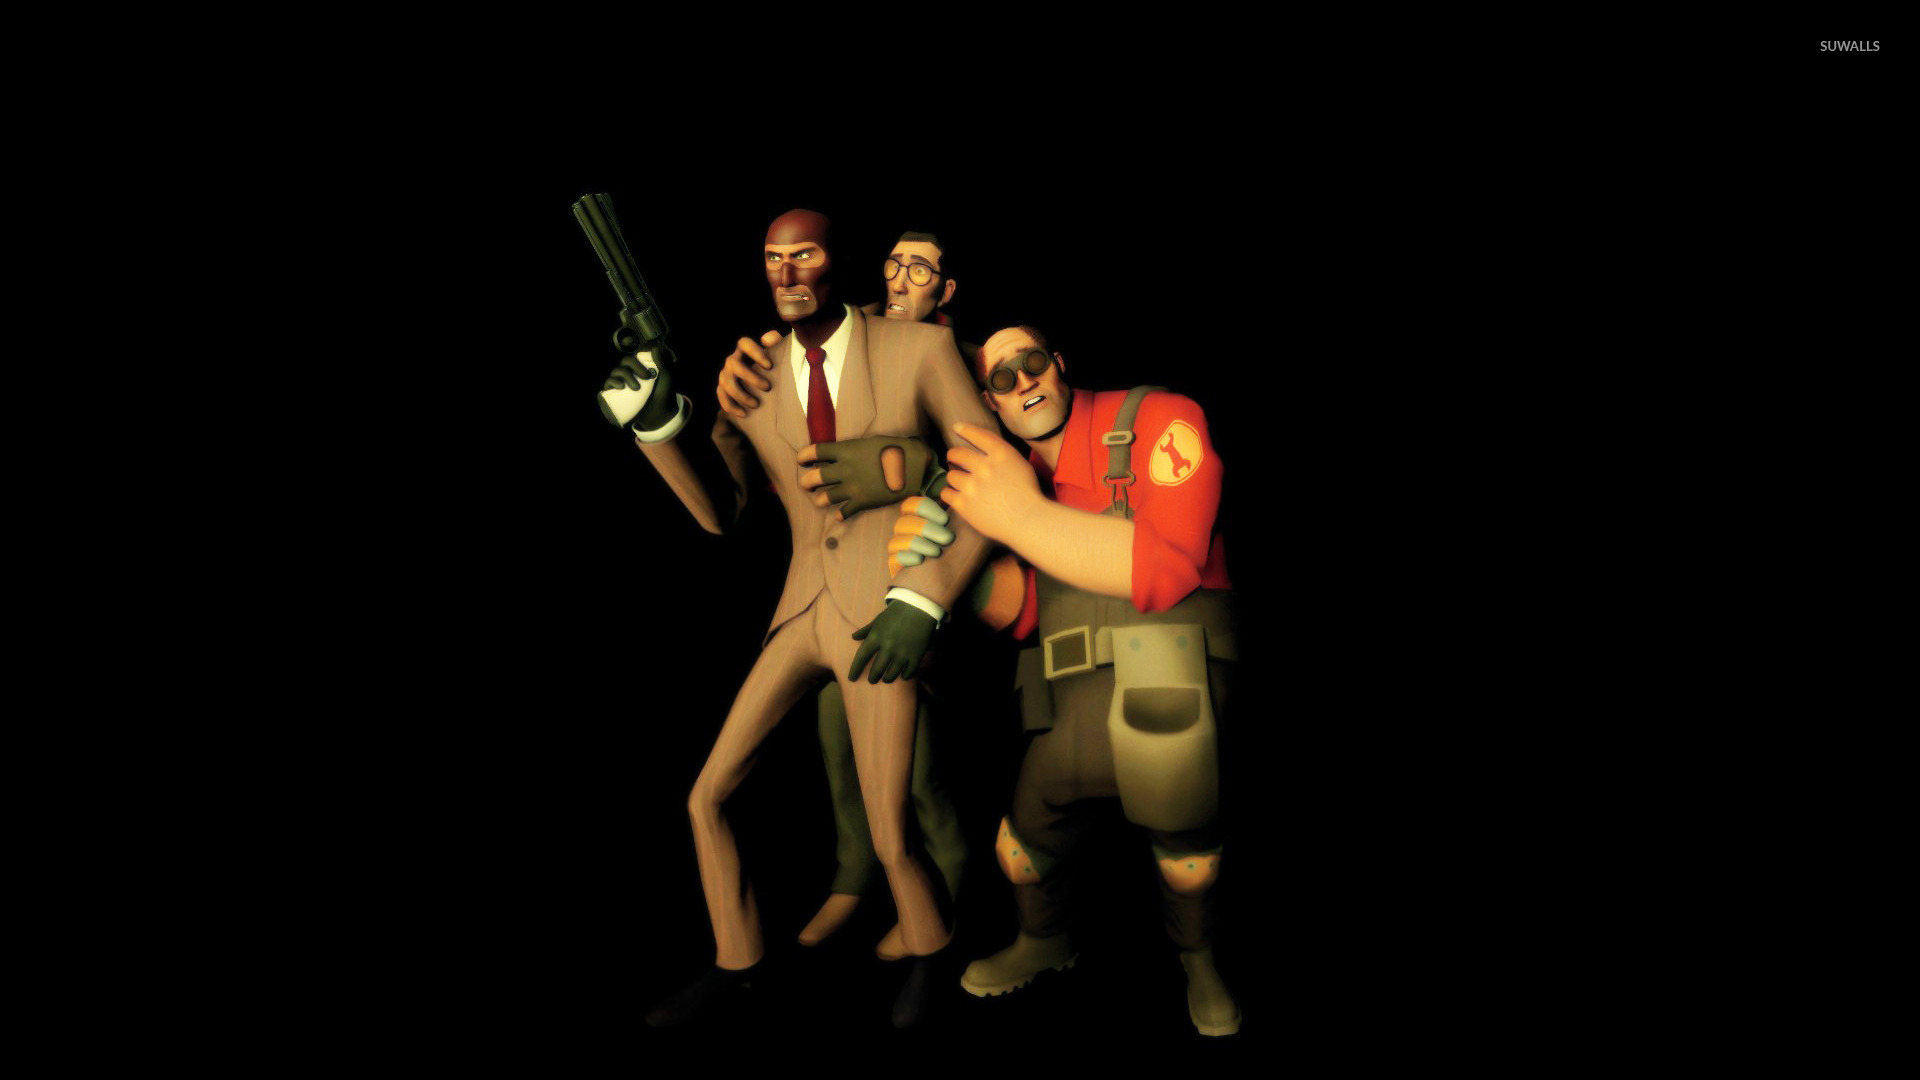 Team Fortress 2 17 Wallpaper Game Wallpapers 14831